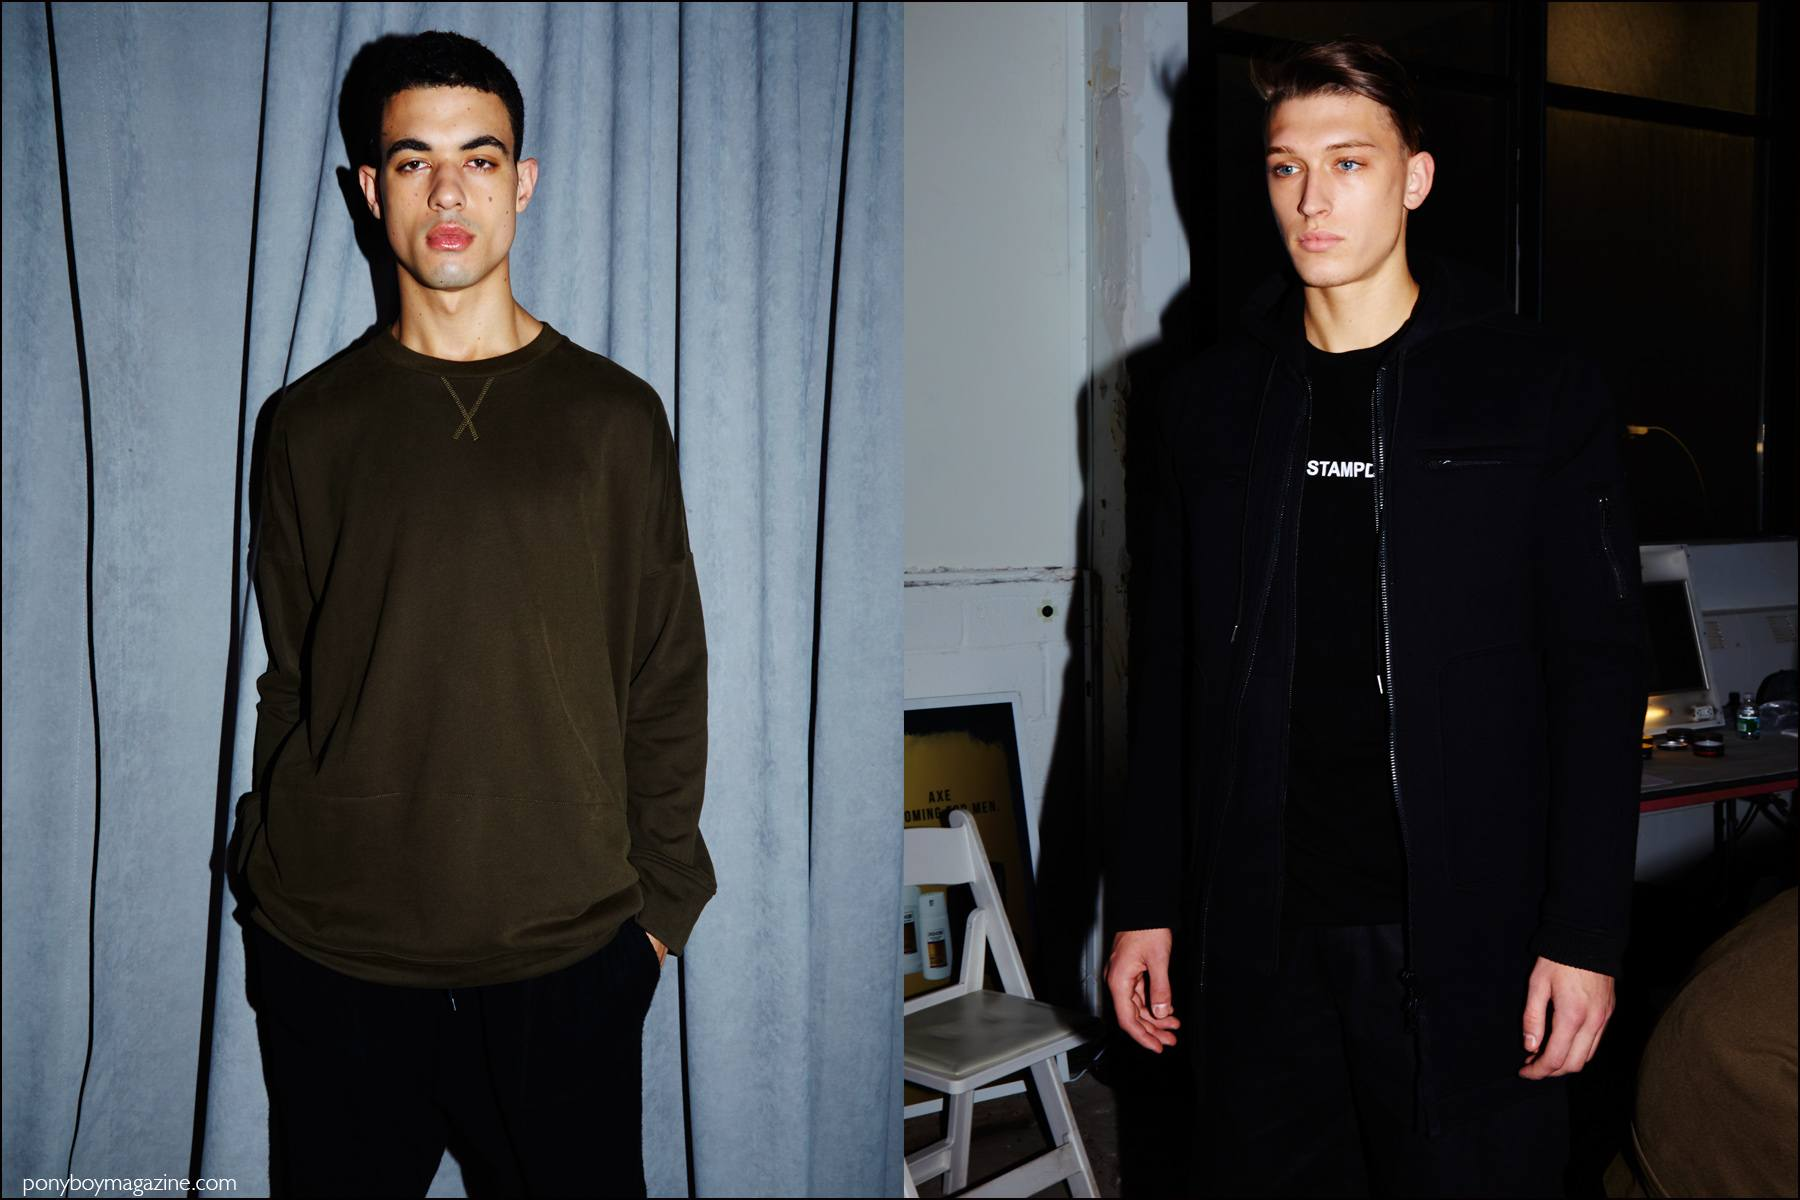 Stampd F/W16 menswear photographed backstage by Alexander Thompson for Ponyboy magazine NY.